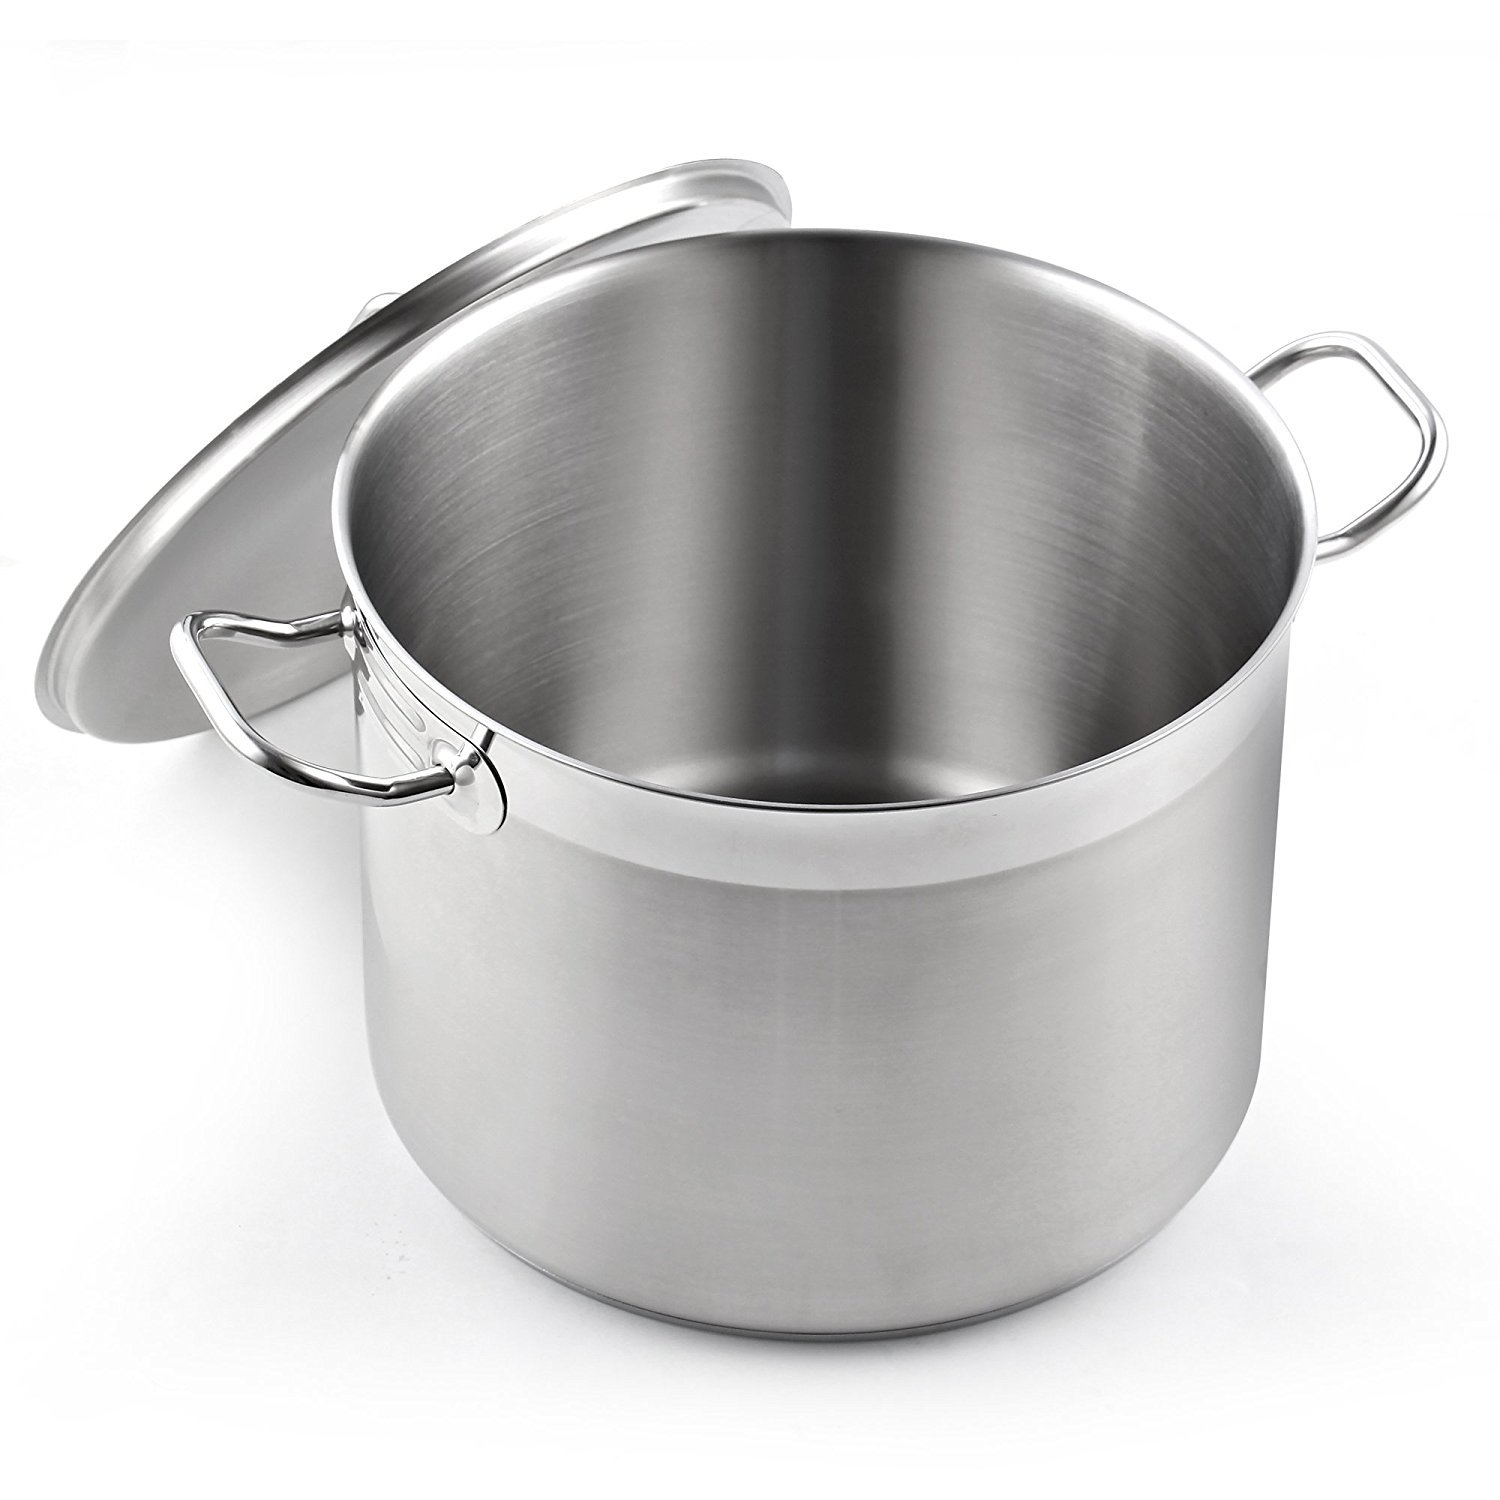 Cooks Standard 02584 Classic Lid 8-Quart Stainless Steel Stockpot Silver